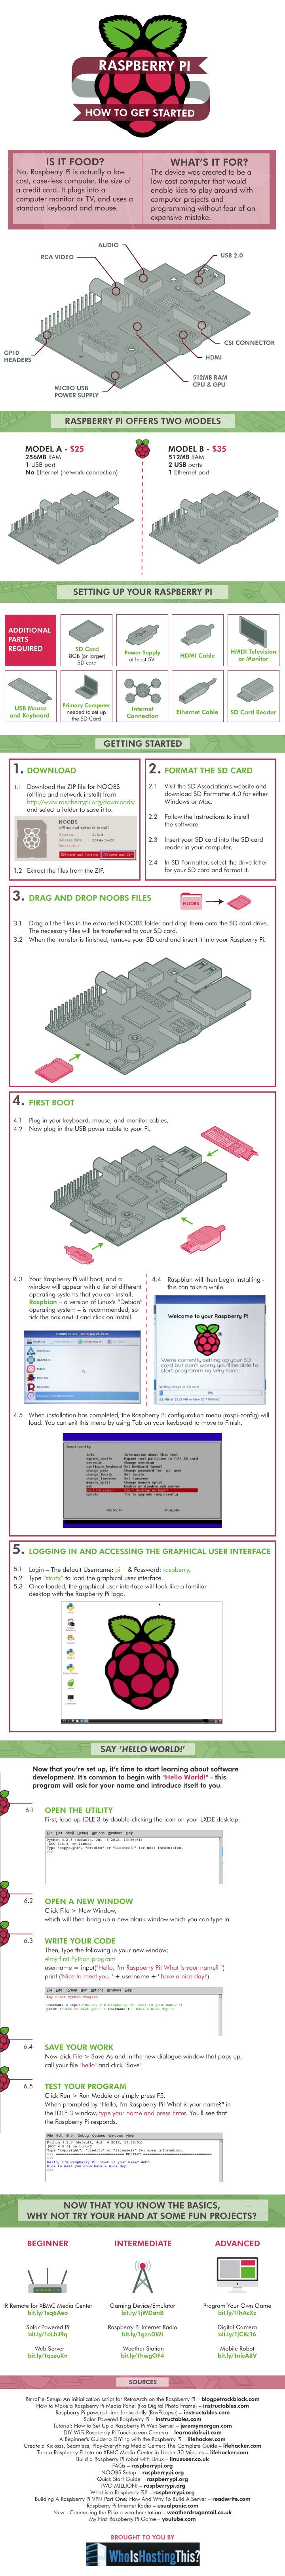 Raspberry Pi: How To Get Started